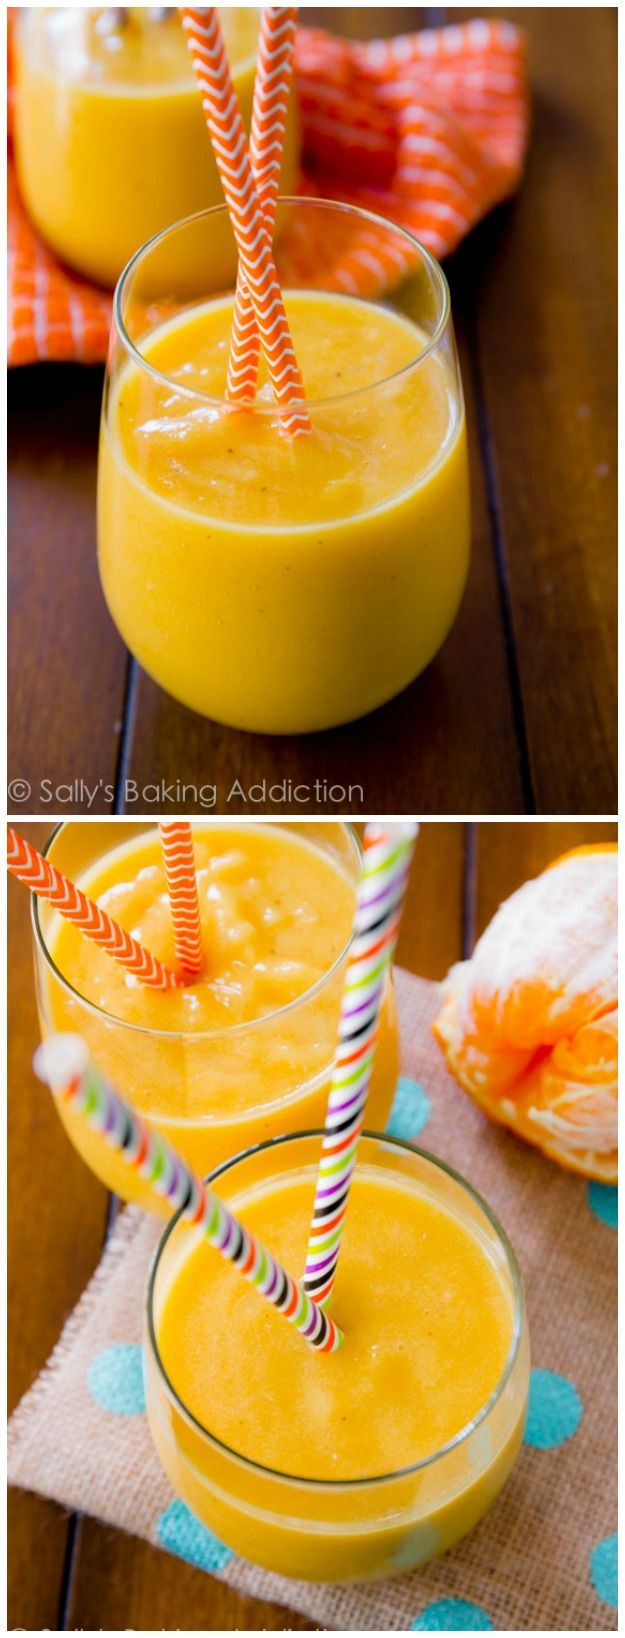 My favorite smoothie recipe - creamy, fruity, and quick! Only 5 easy ingredients.